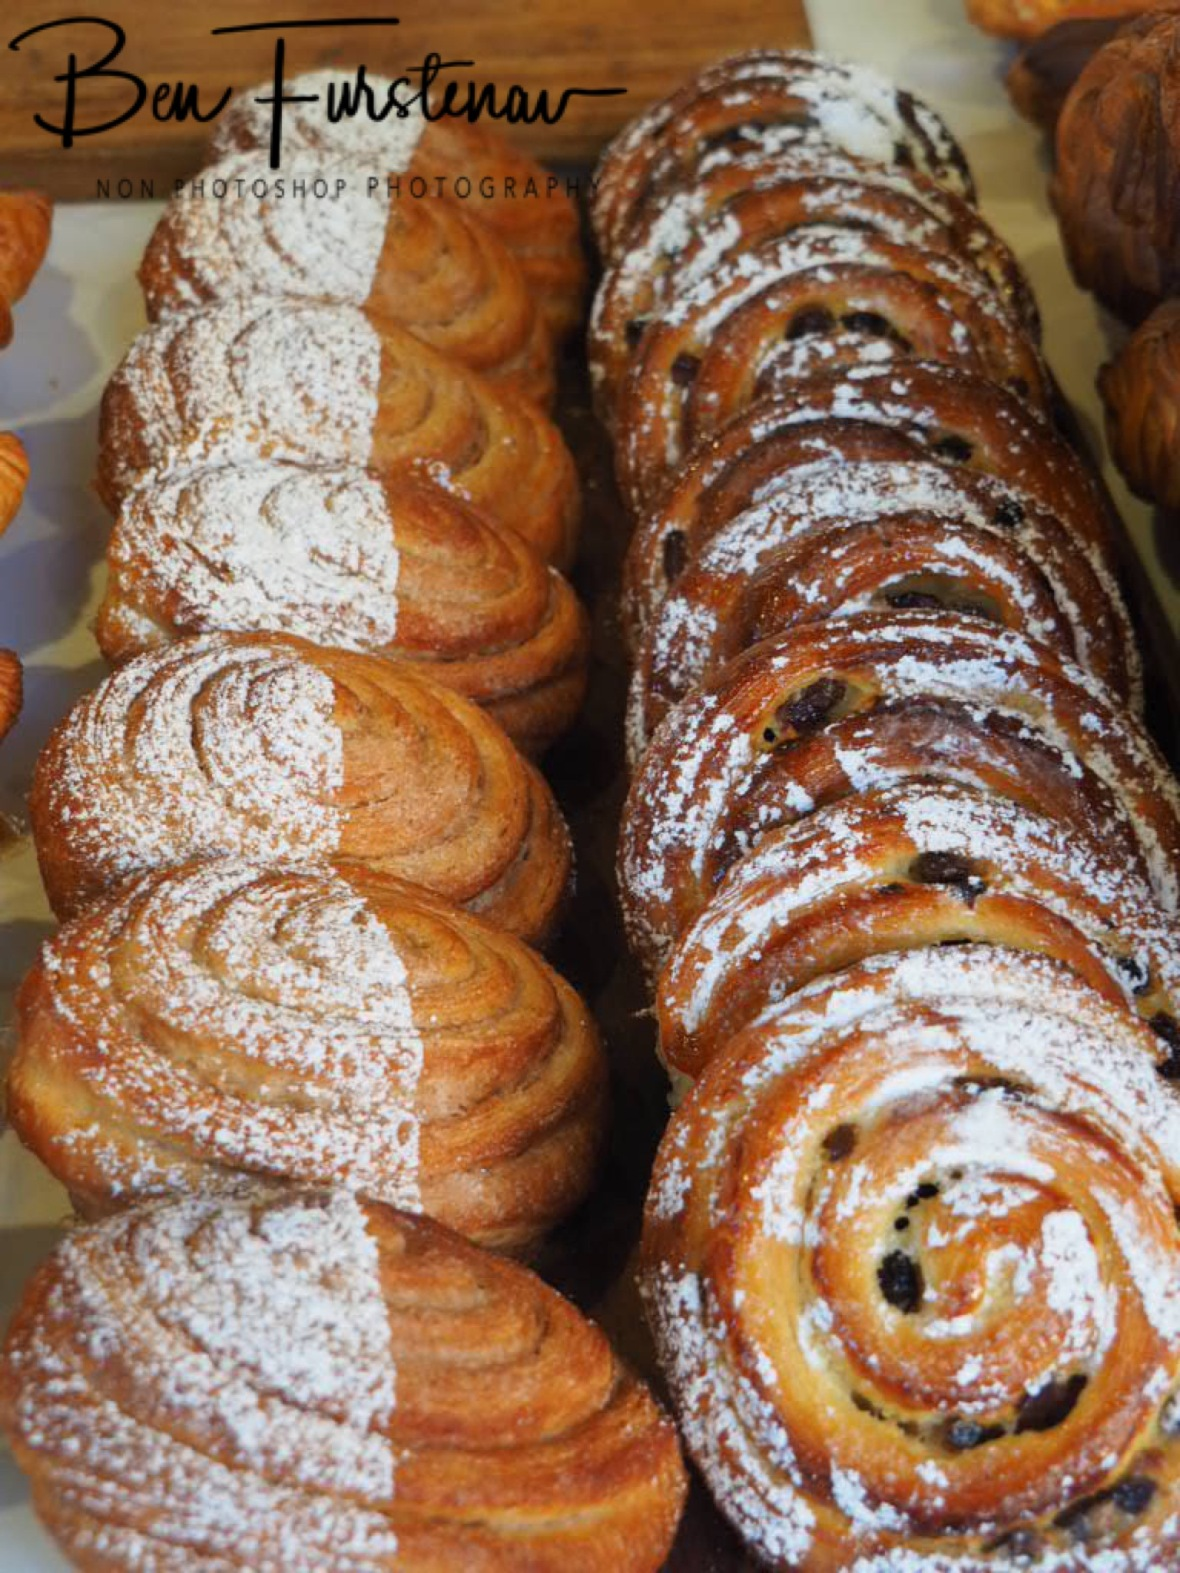 Cinnamon danish and pain aux raisins at display, Newrybar, New South Wales, Australia